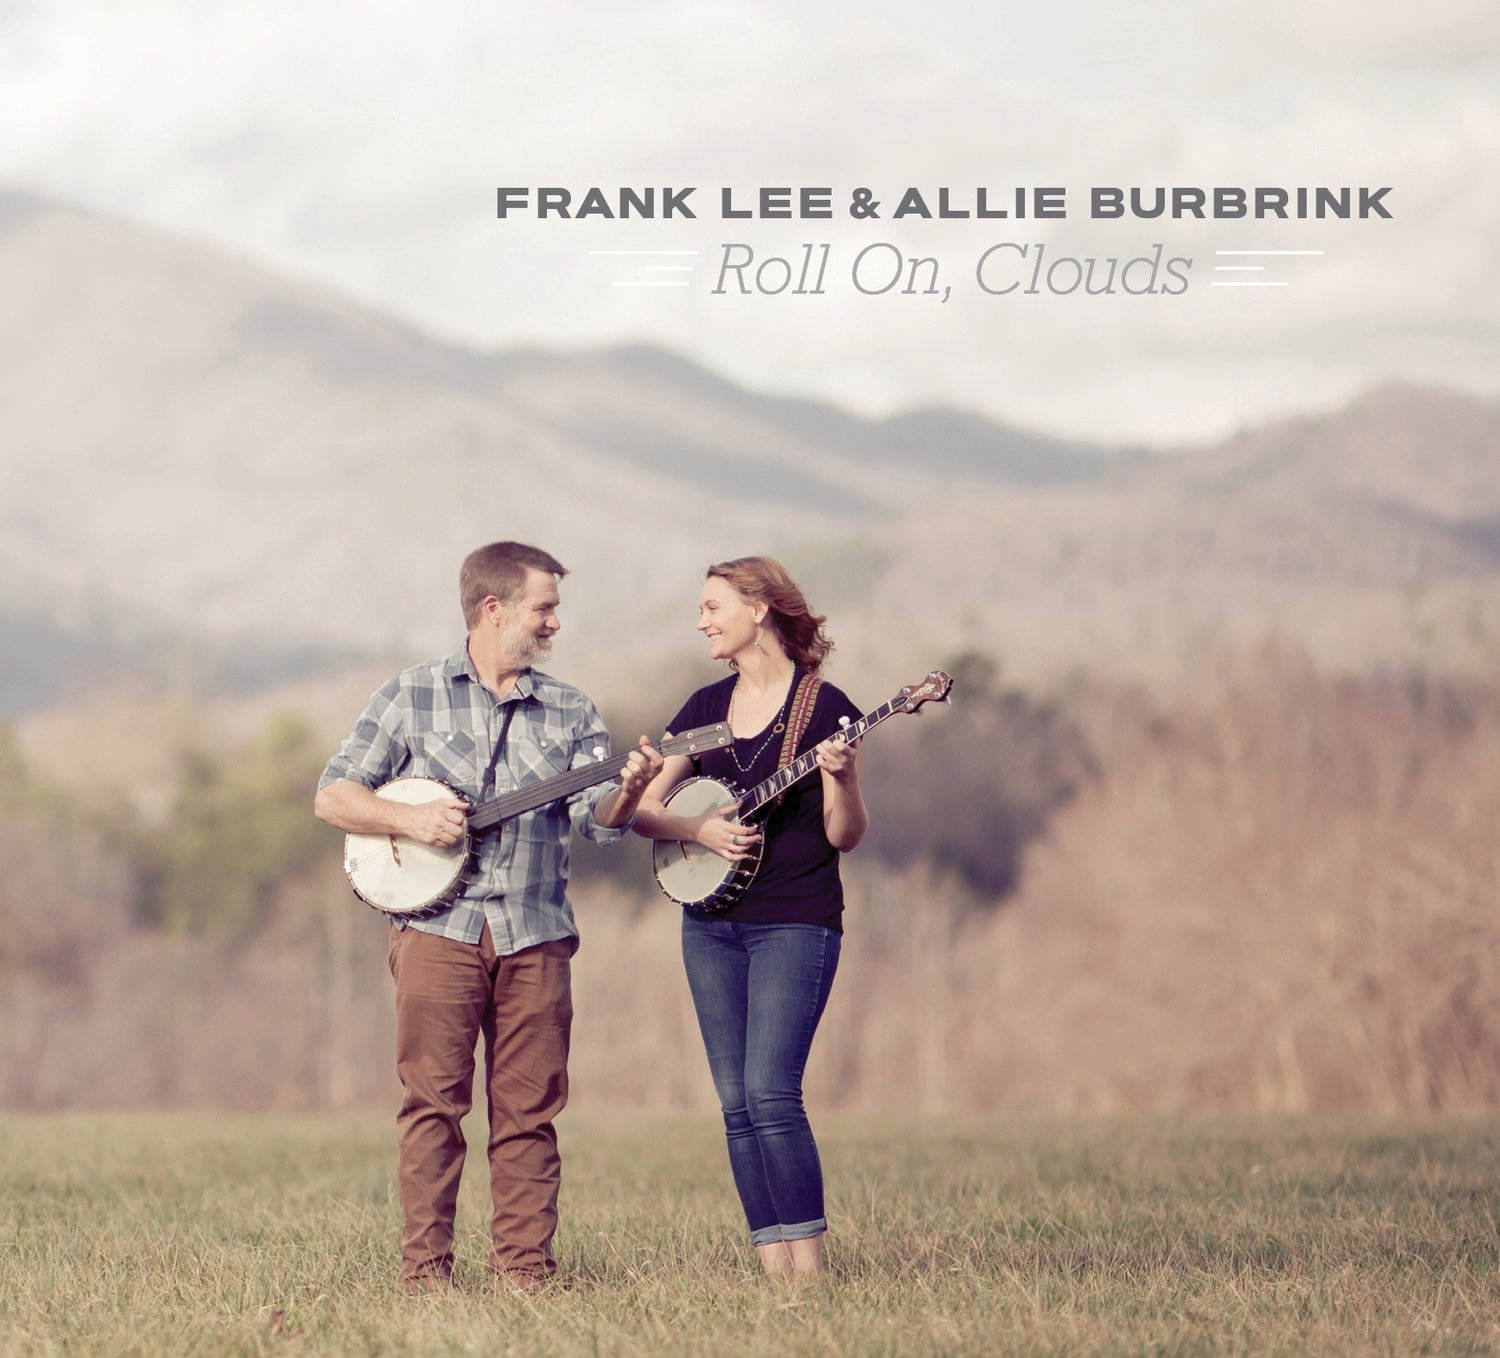 Roll On, Clouds - Frank Lee & Allie Burbrink (2018)